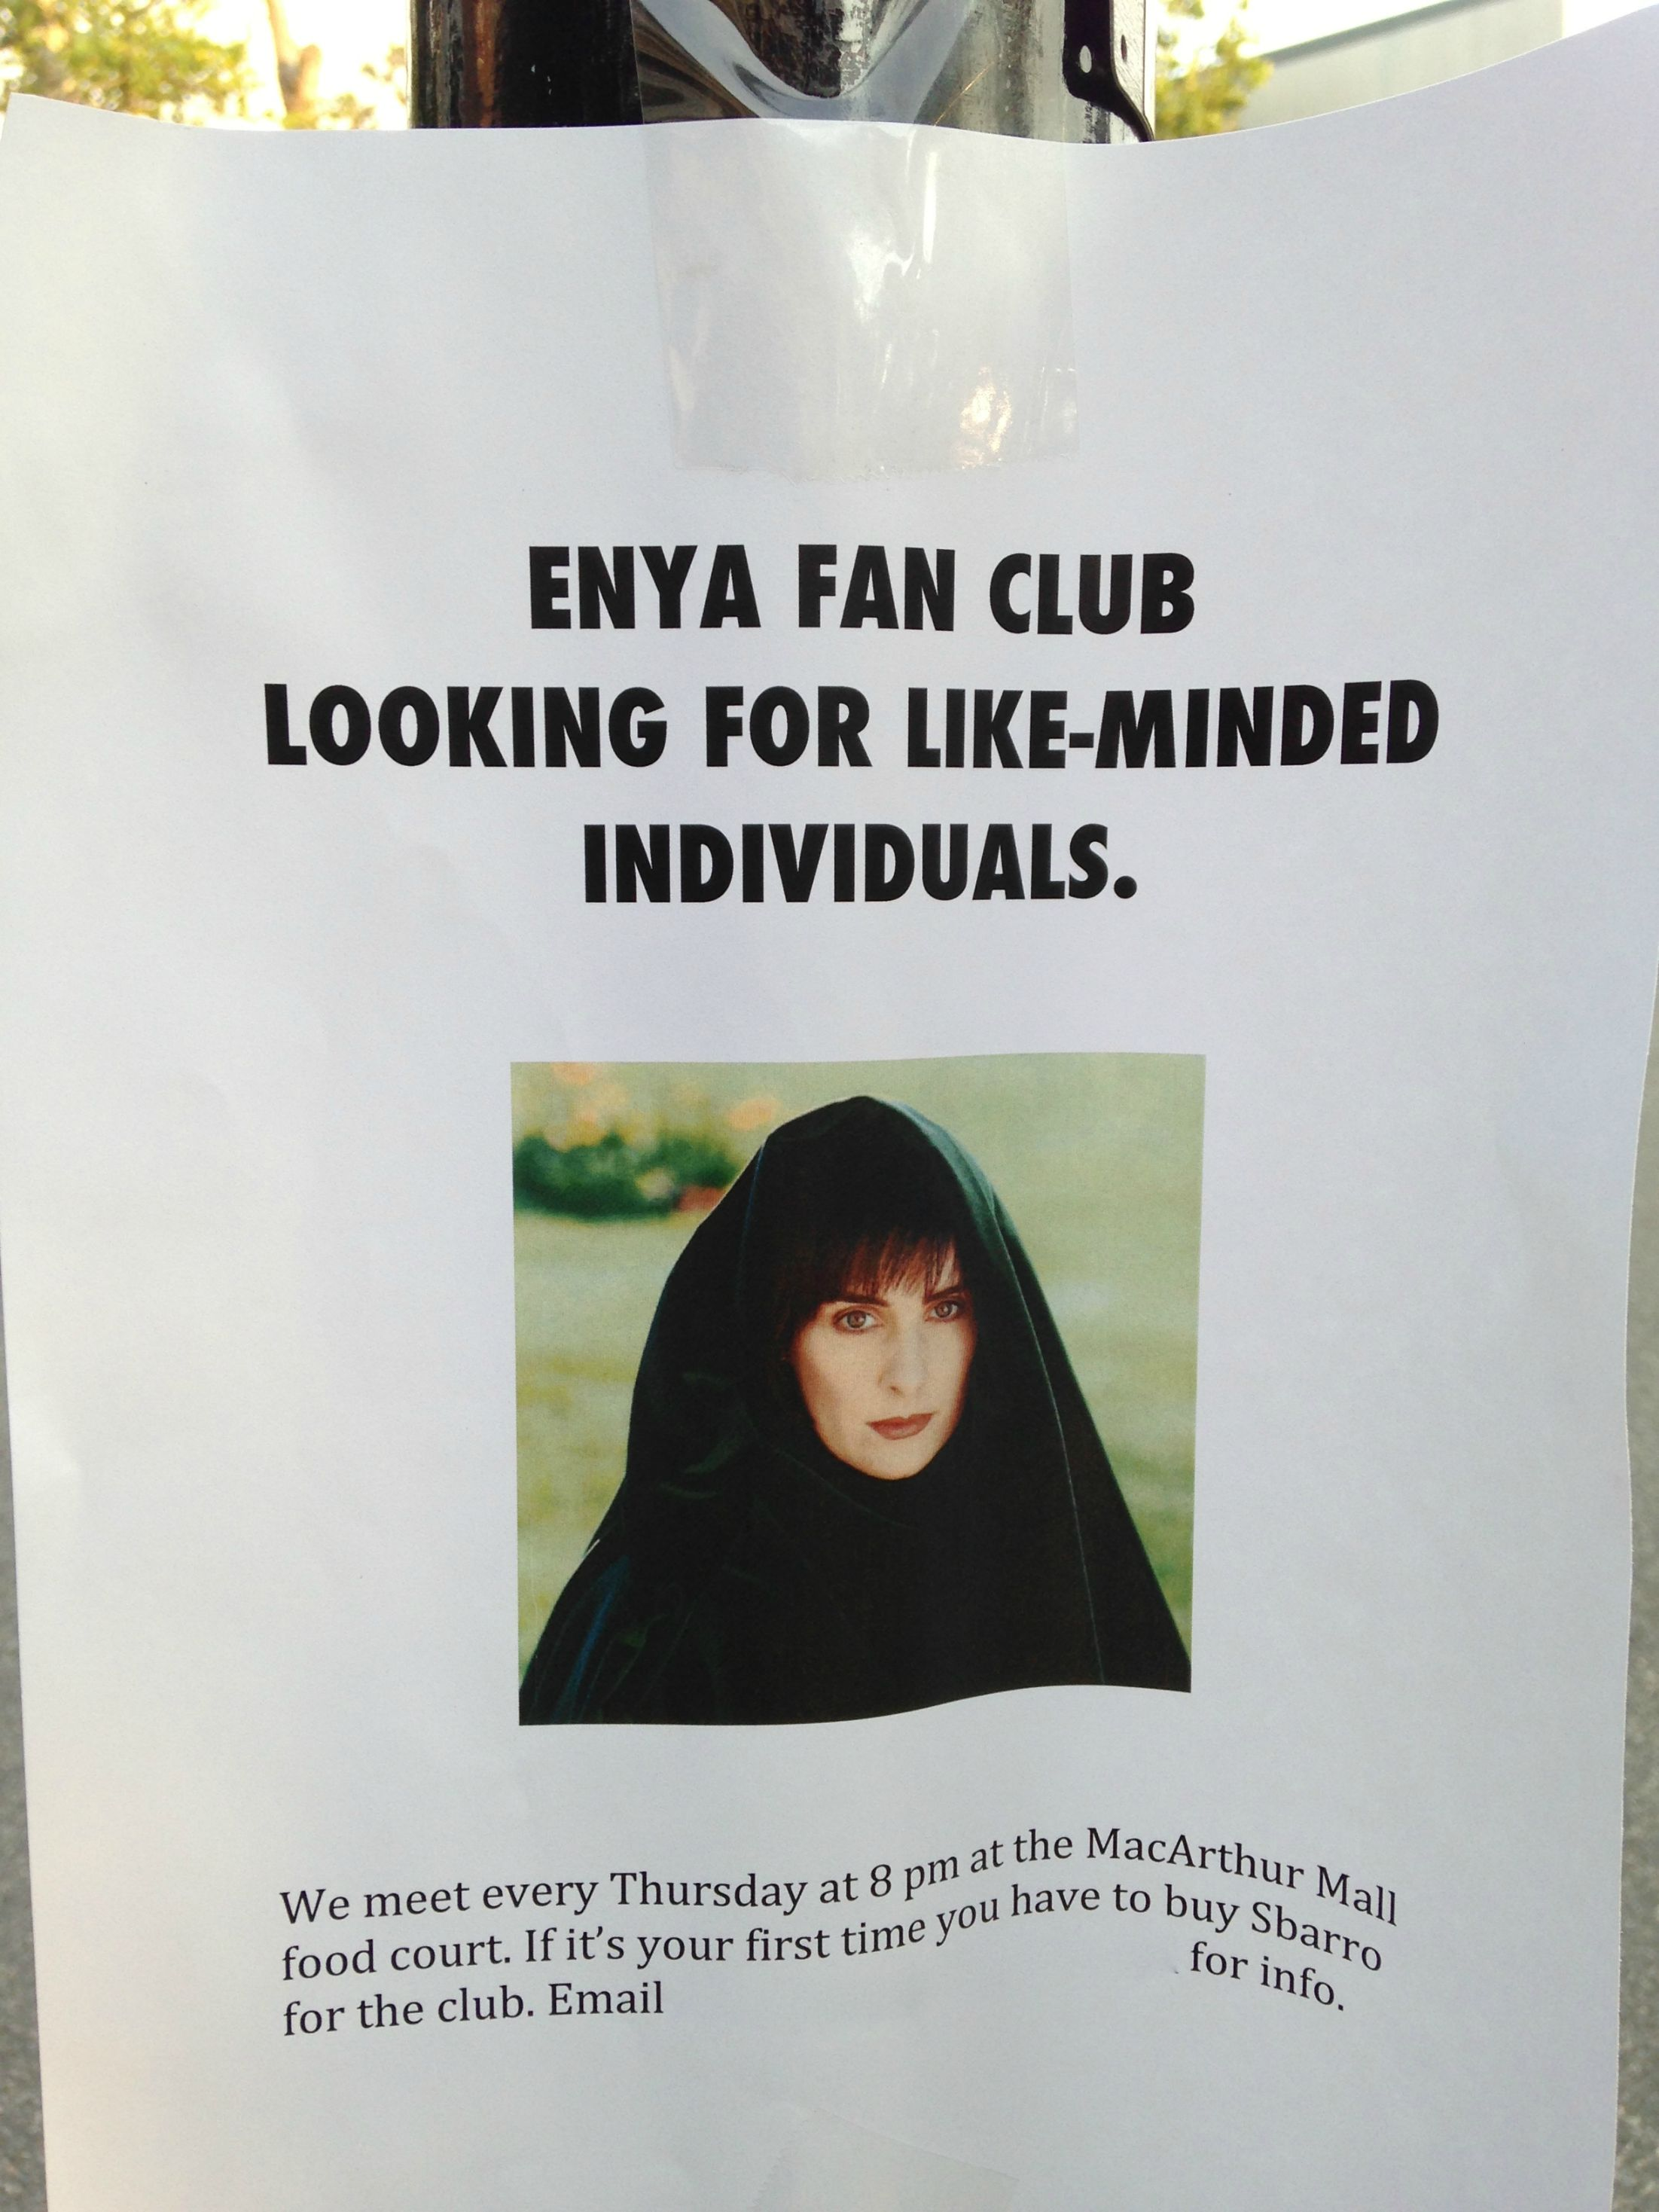 Enya fan club looking for like-minded individuals.